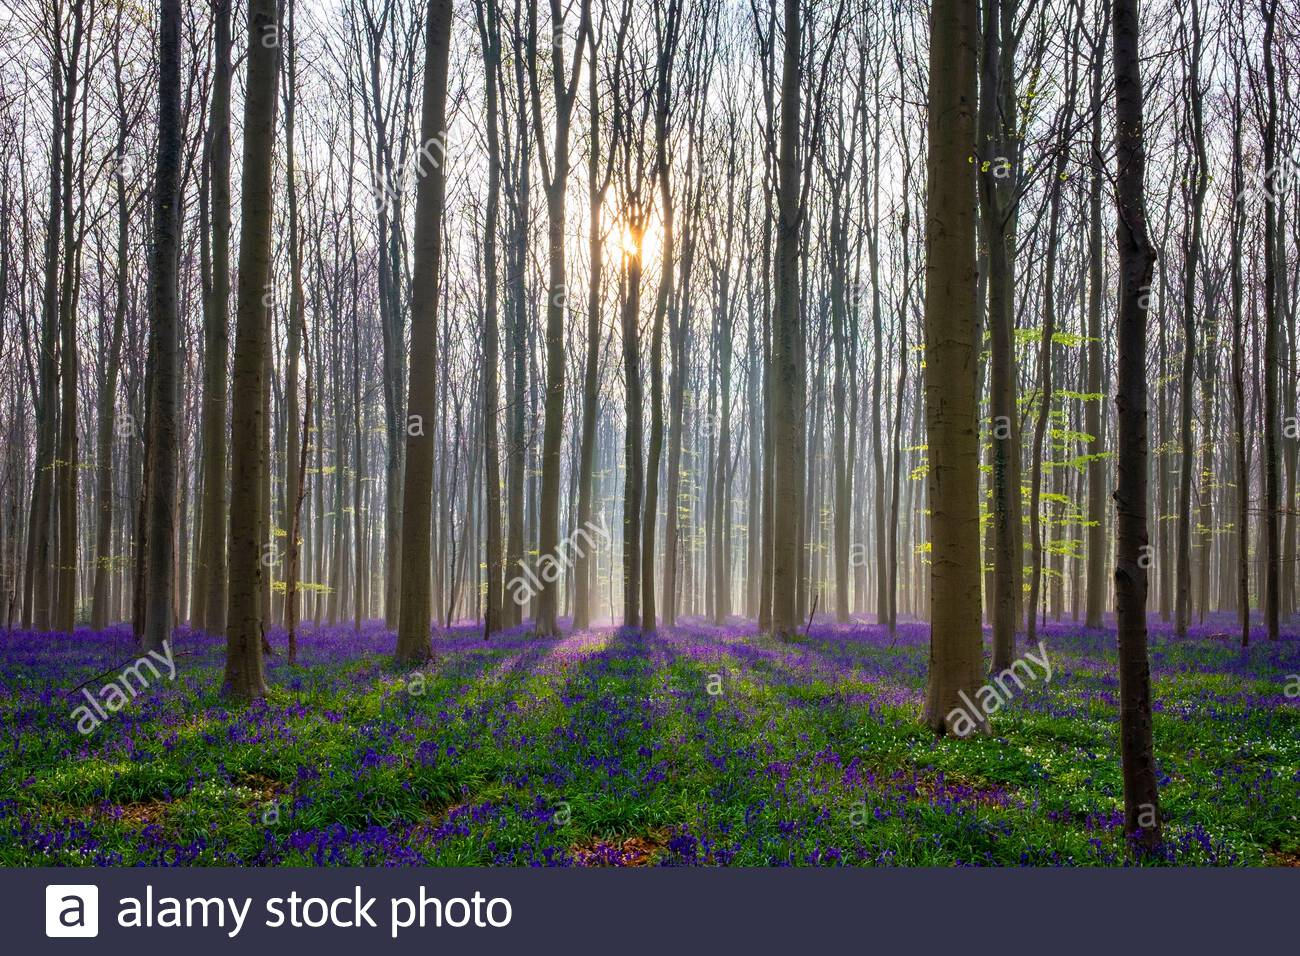 Belgium, Vlaanderen (Flanders), Halle. Bluebell flowers (Hyacinthoides non-scripta) carpet hardwood beech forest in early spring in the Hallerbos fore Stock Photo